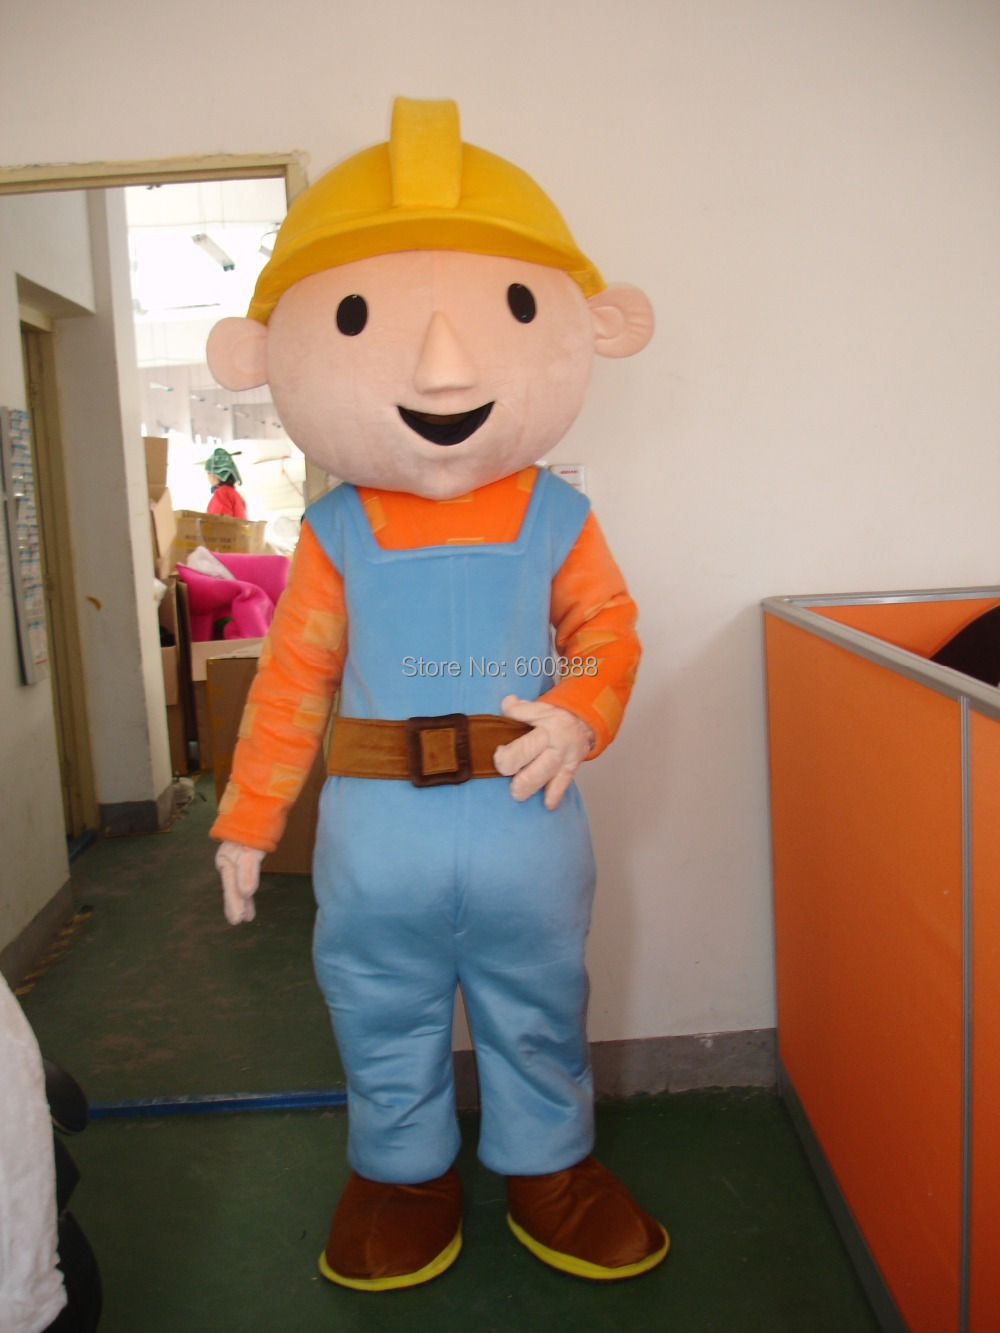 Bob The Builder Halloween Costume For Adults New Adult Mascot Costume Bob